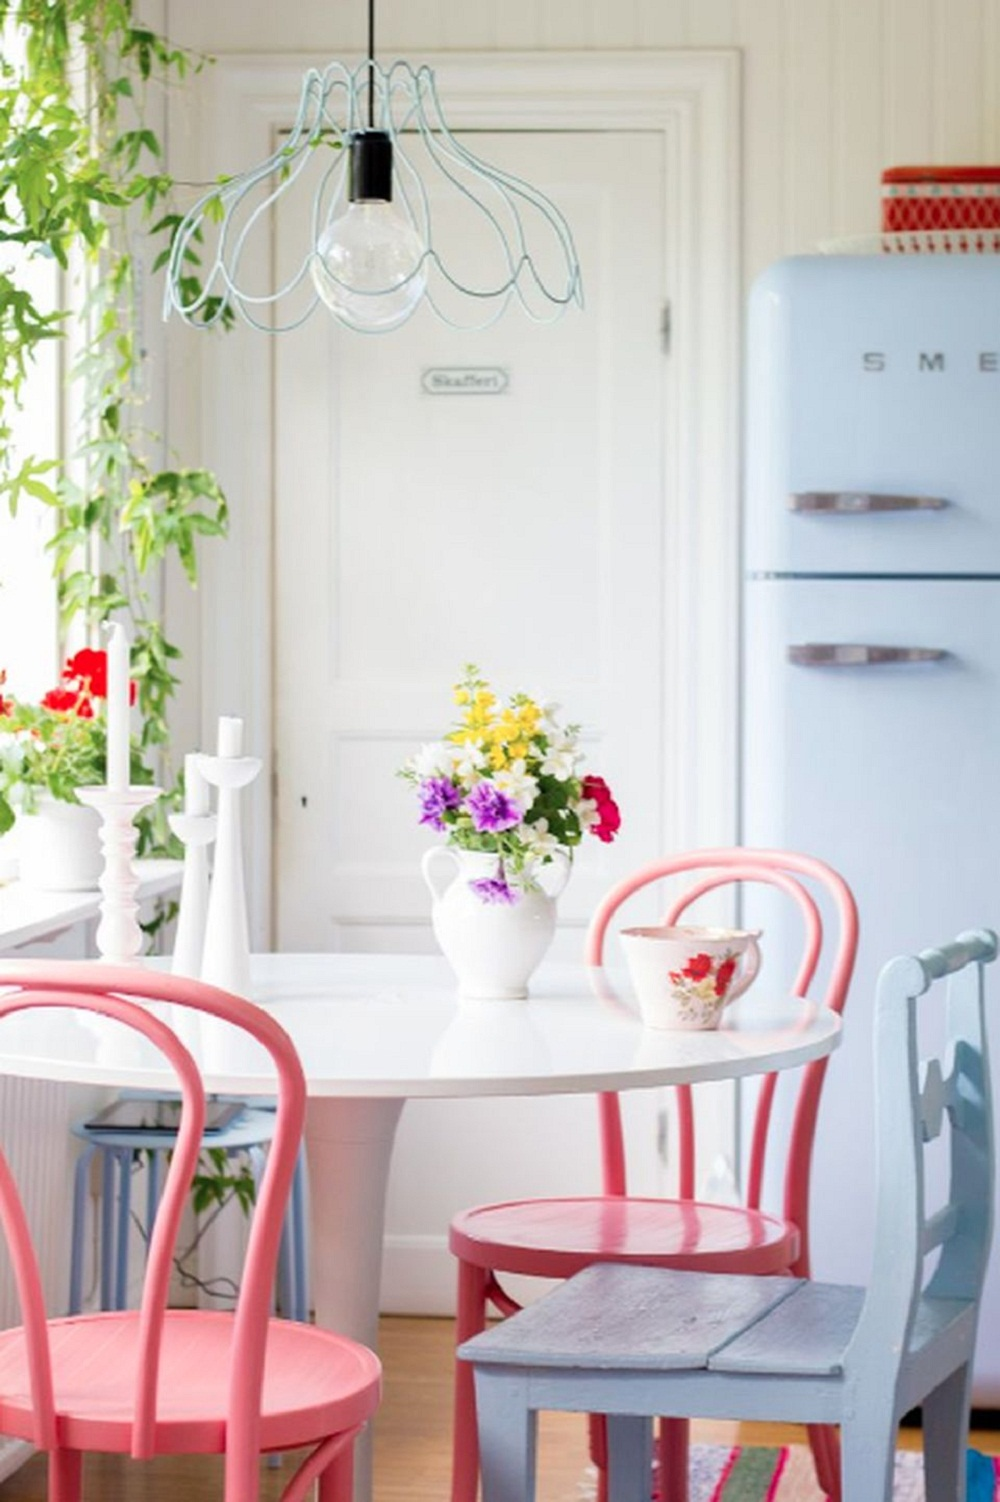 Pink and lavender bentwood chairs via Harlig Hemma